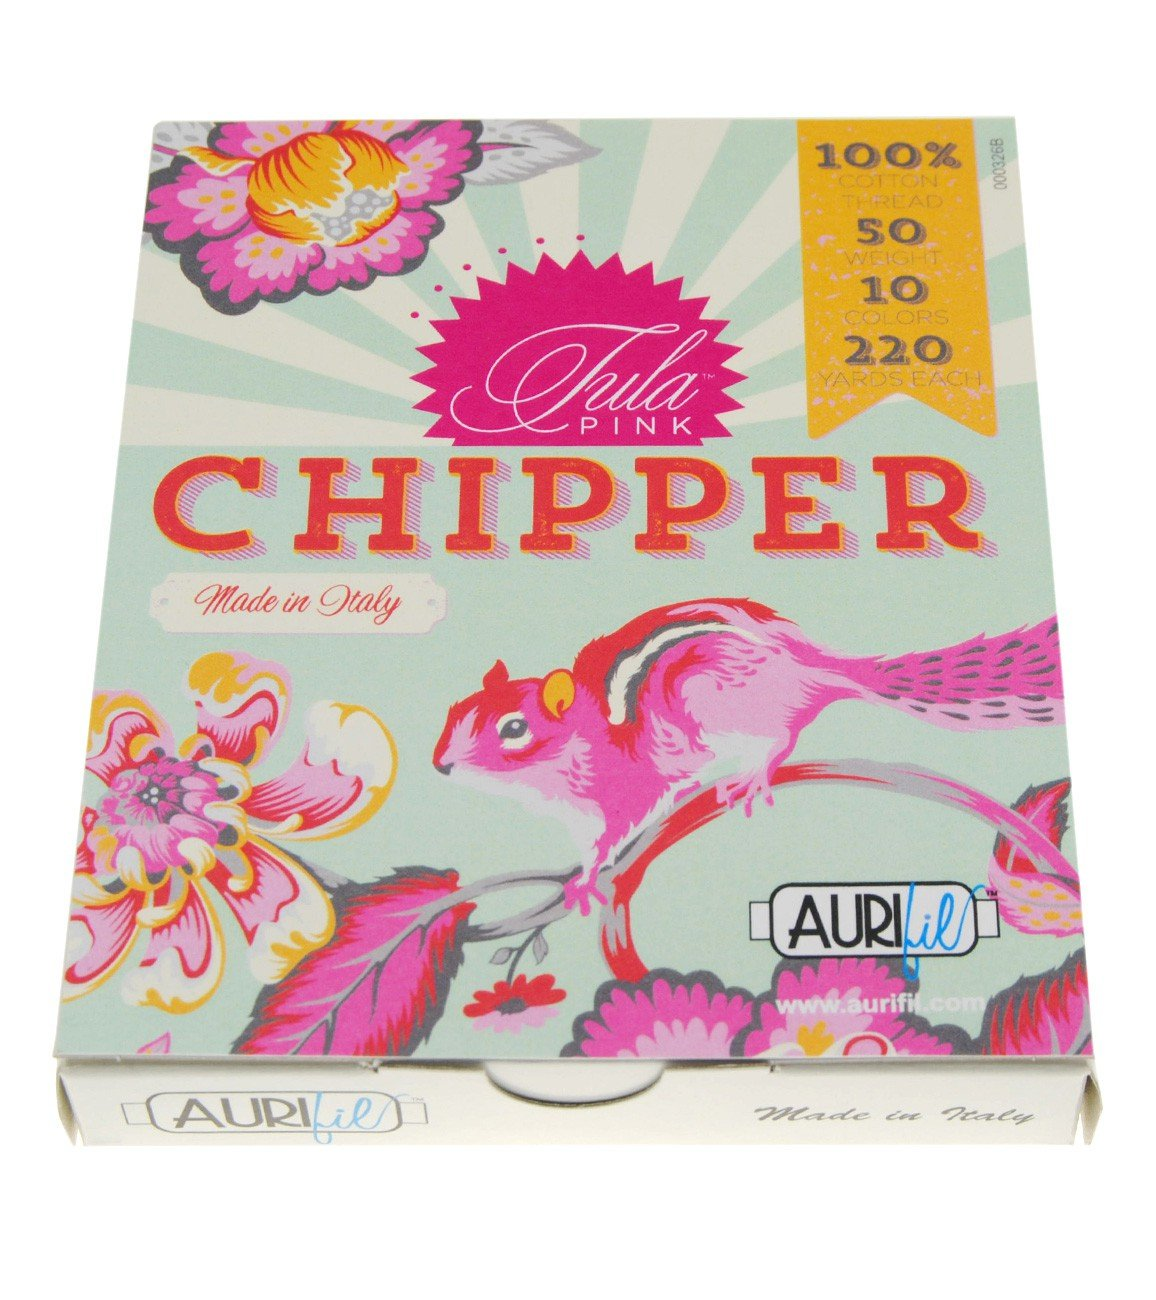 Chipper Collection By Tula Pink 10 Small Spools Cotton 50wt